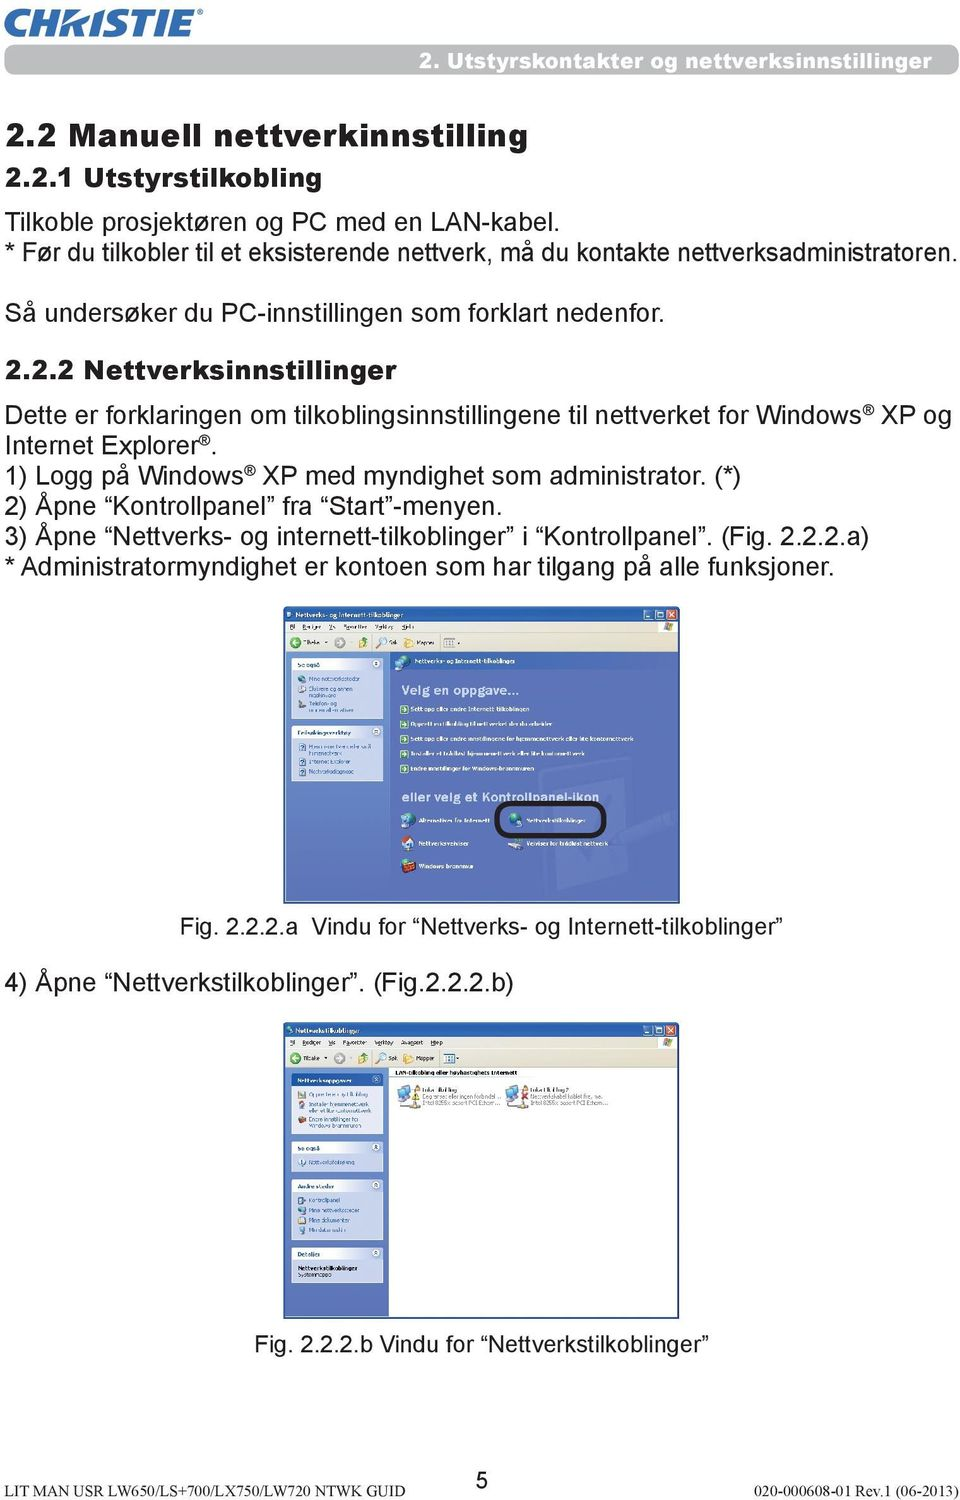 2.2 Nettverksinnstillinger Dette er forklaringen om tilkoblingsinnstillingene til nettverket for Windows XP og Internet Explorer. 1) Logg på Windows XP med myndighet som administrator.